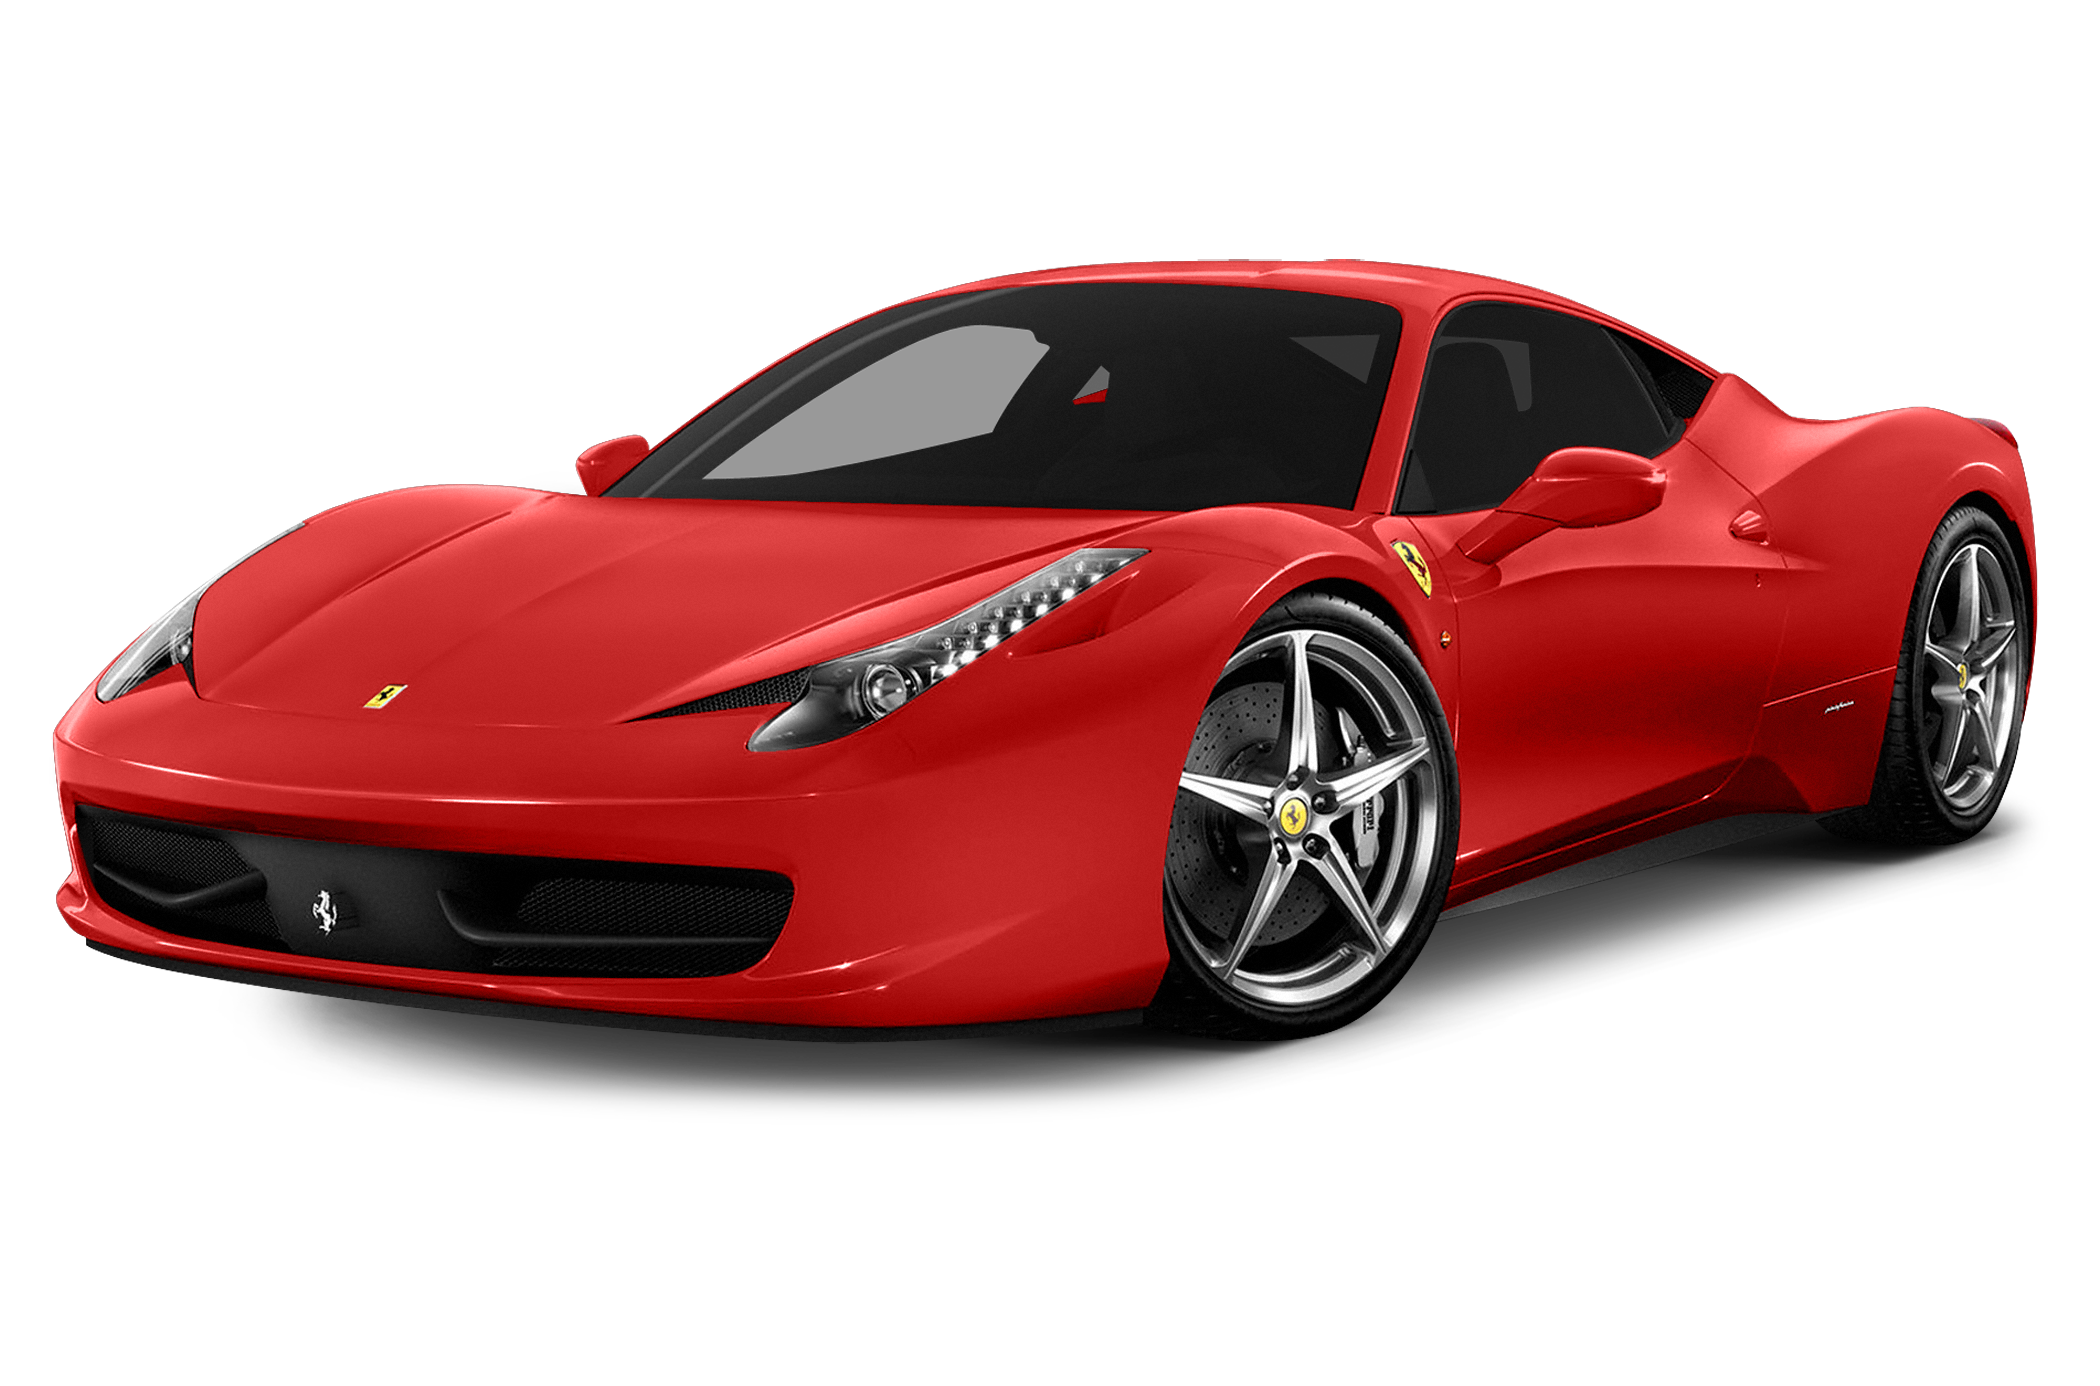 Car Repair Estimate >> 2013 Ferrari 458 Italia Reviews, Specs and Prices